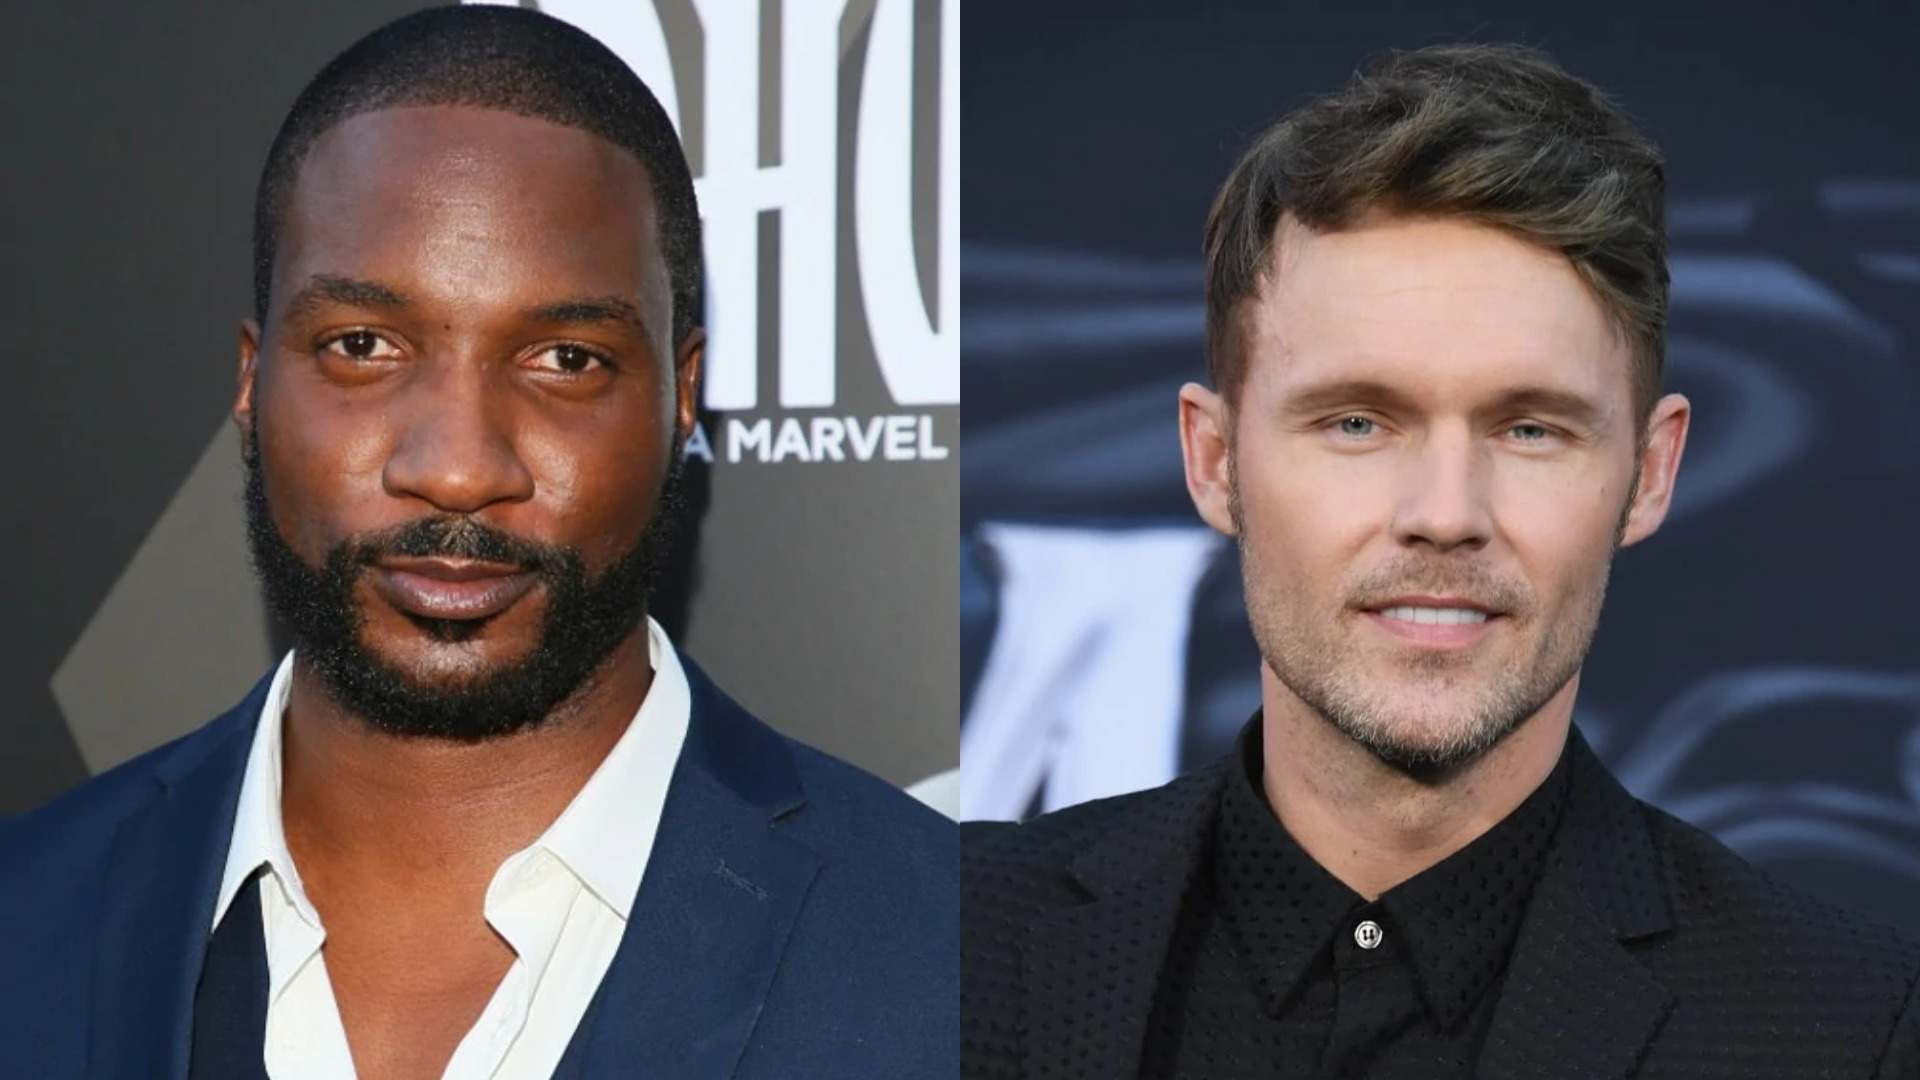 Deadline is exclusively reporting that Eme Ikwuakor and Scott Haze are the latest names to join the cast of the upcoming espionage thriller The Gray Man from the Russo brothers at Netflix.